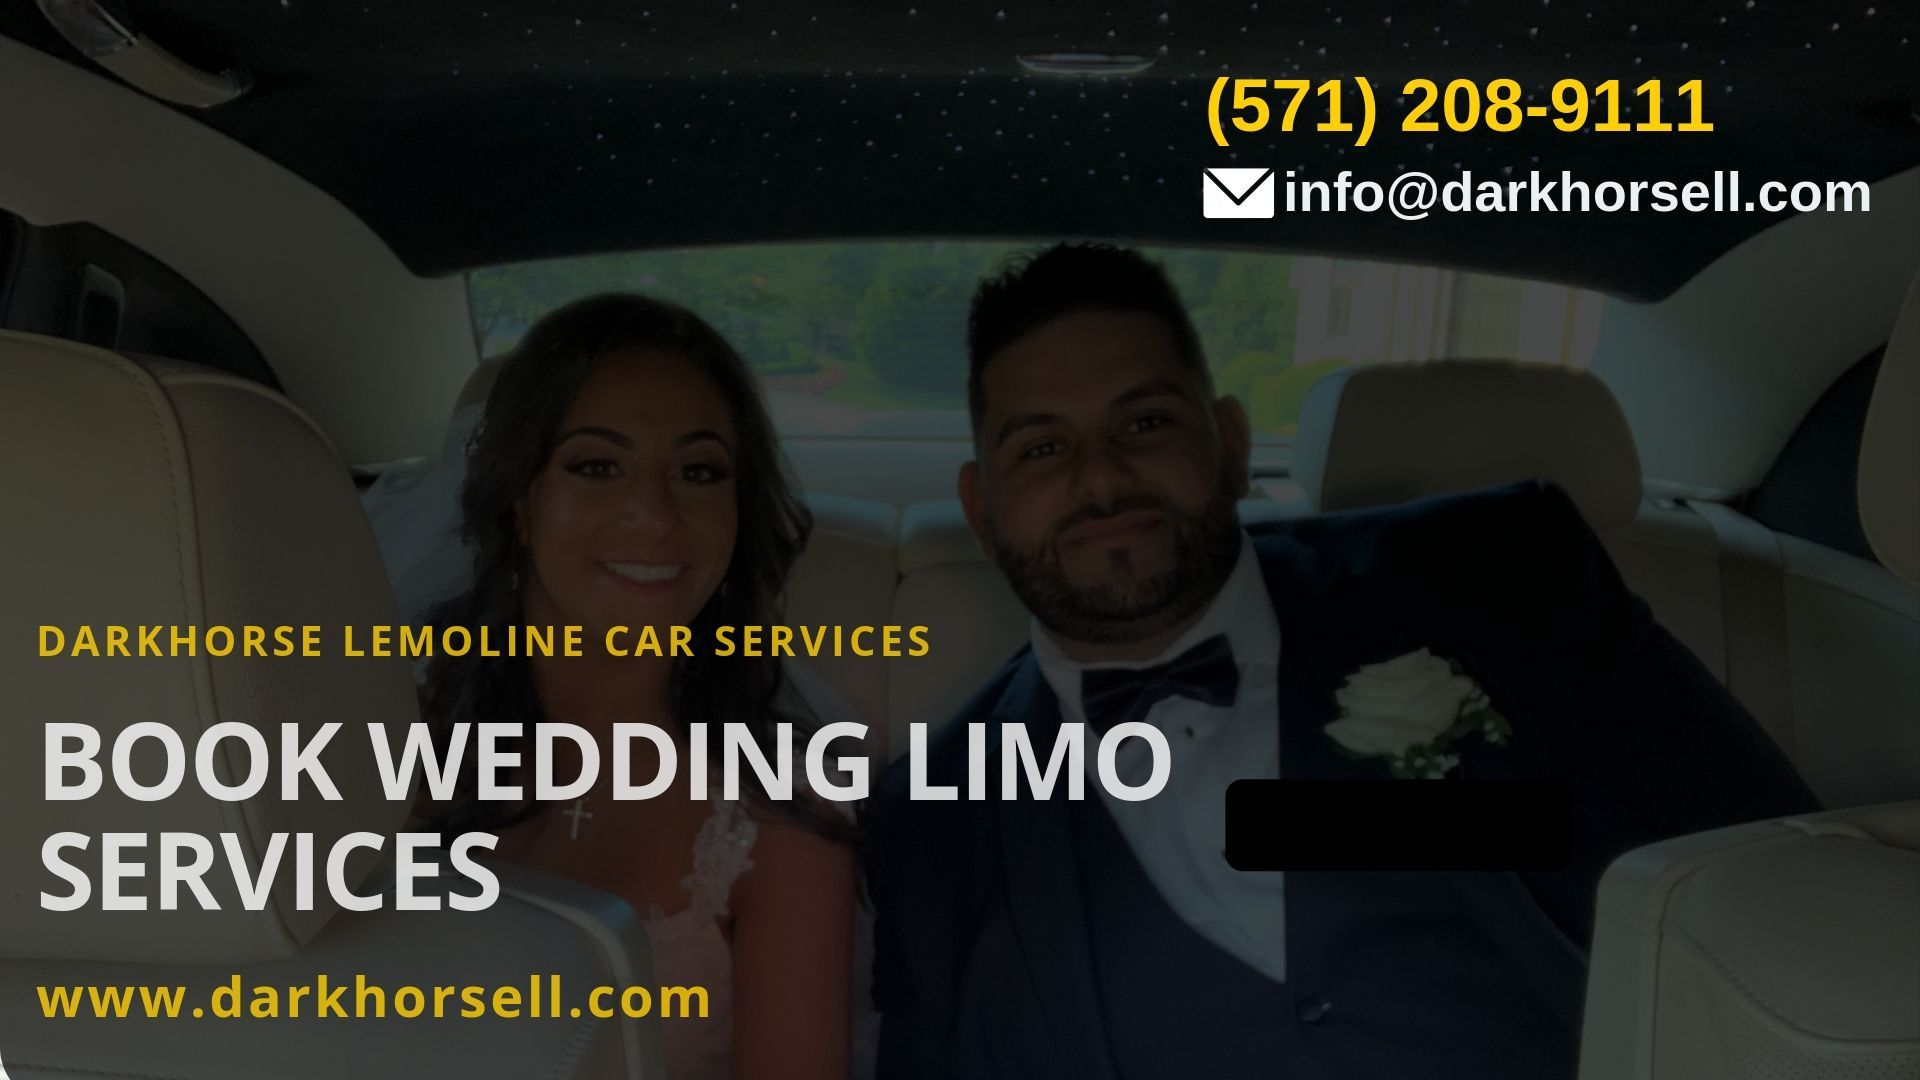 Limousine cars for the wedding out of our huge selection